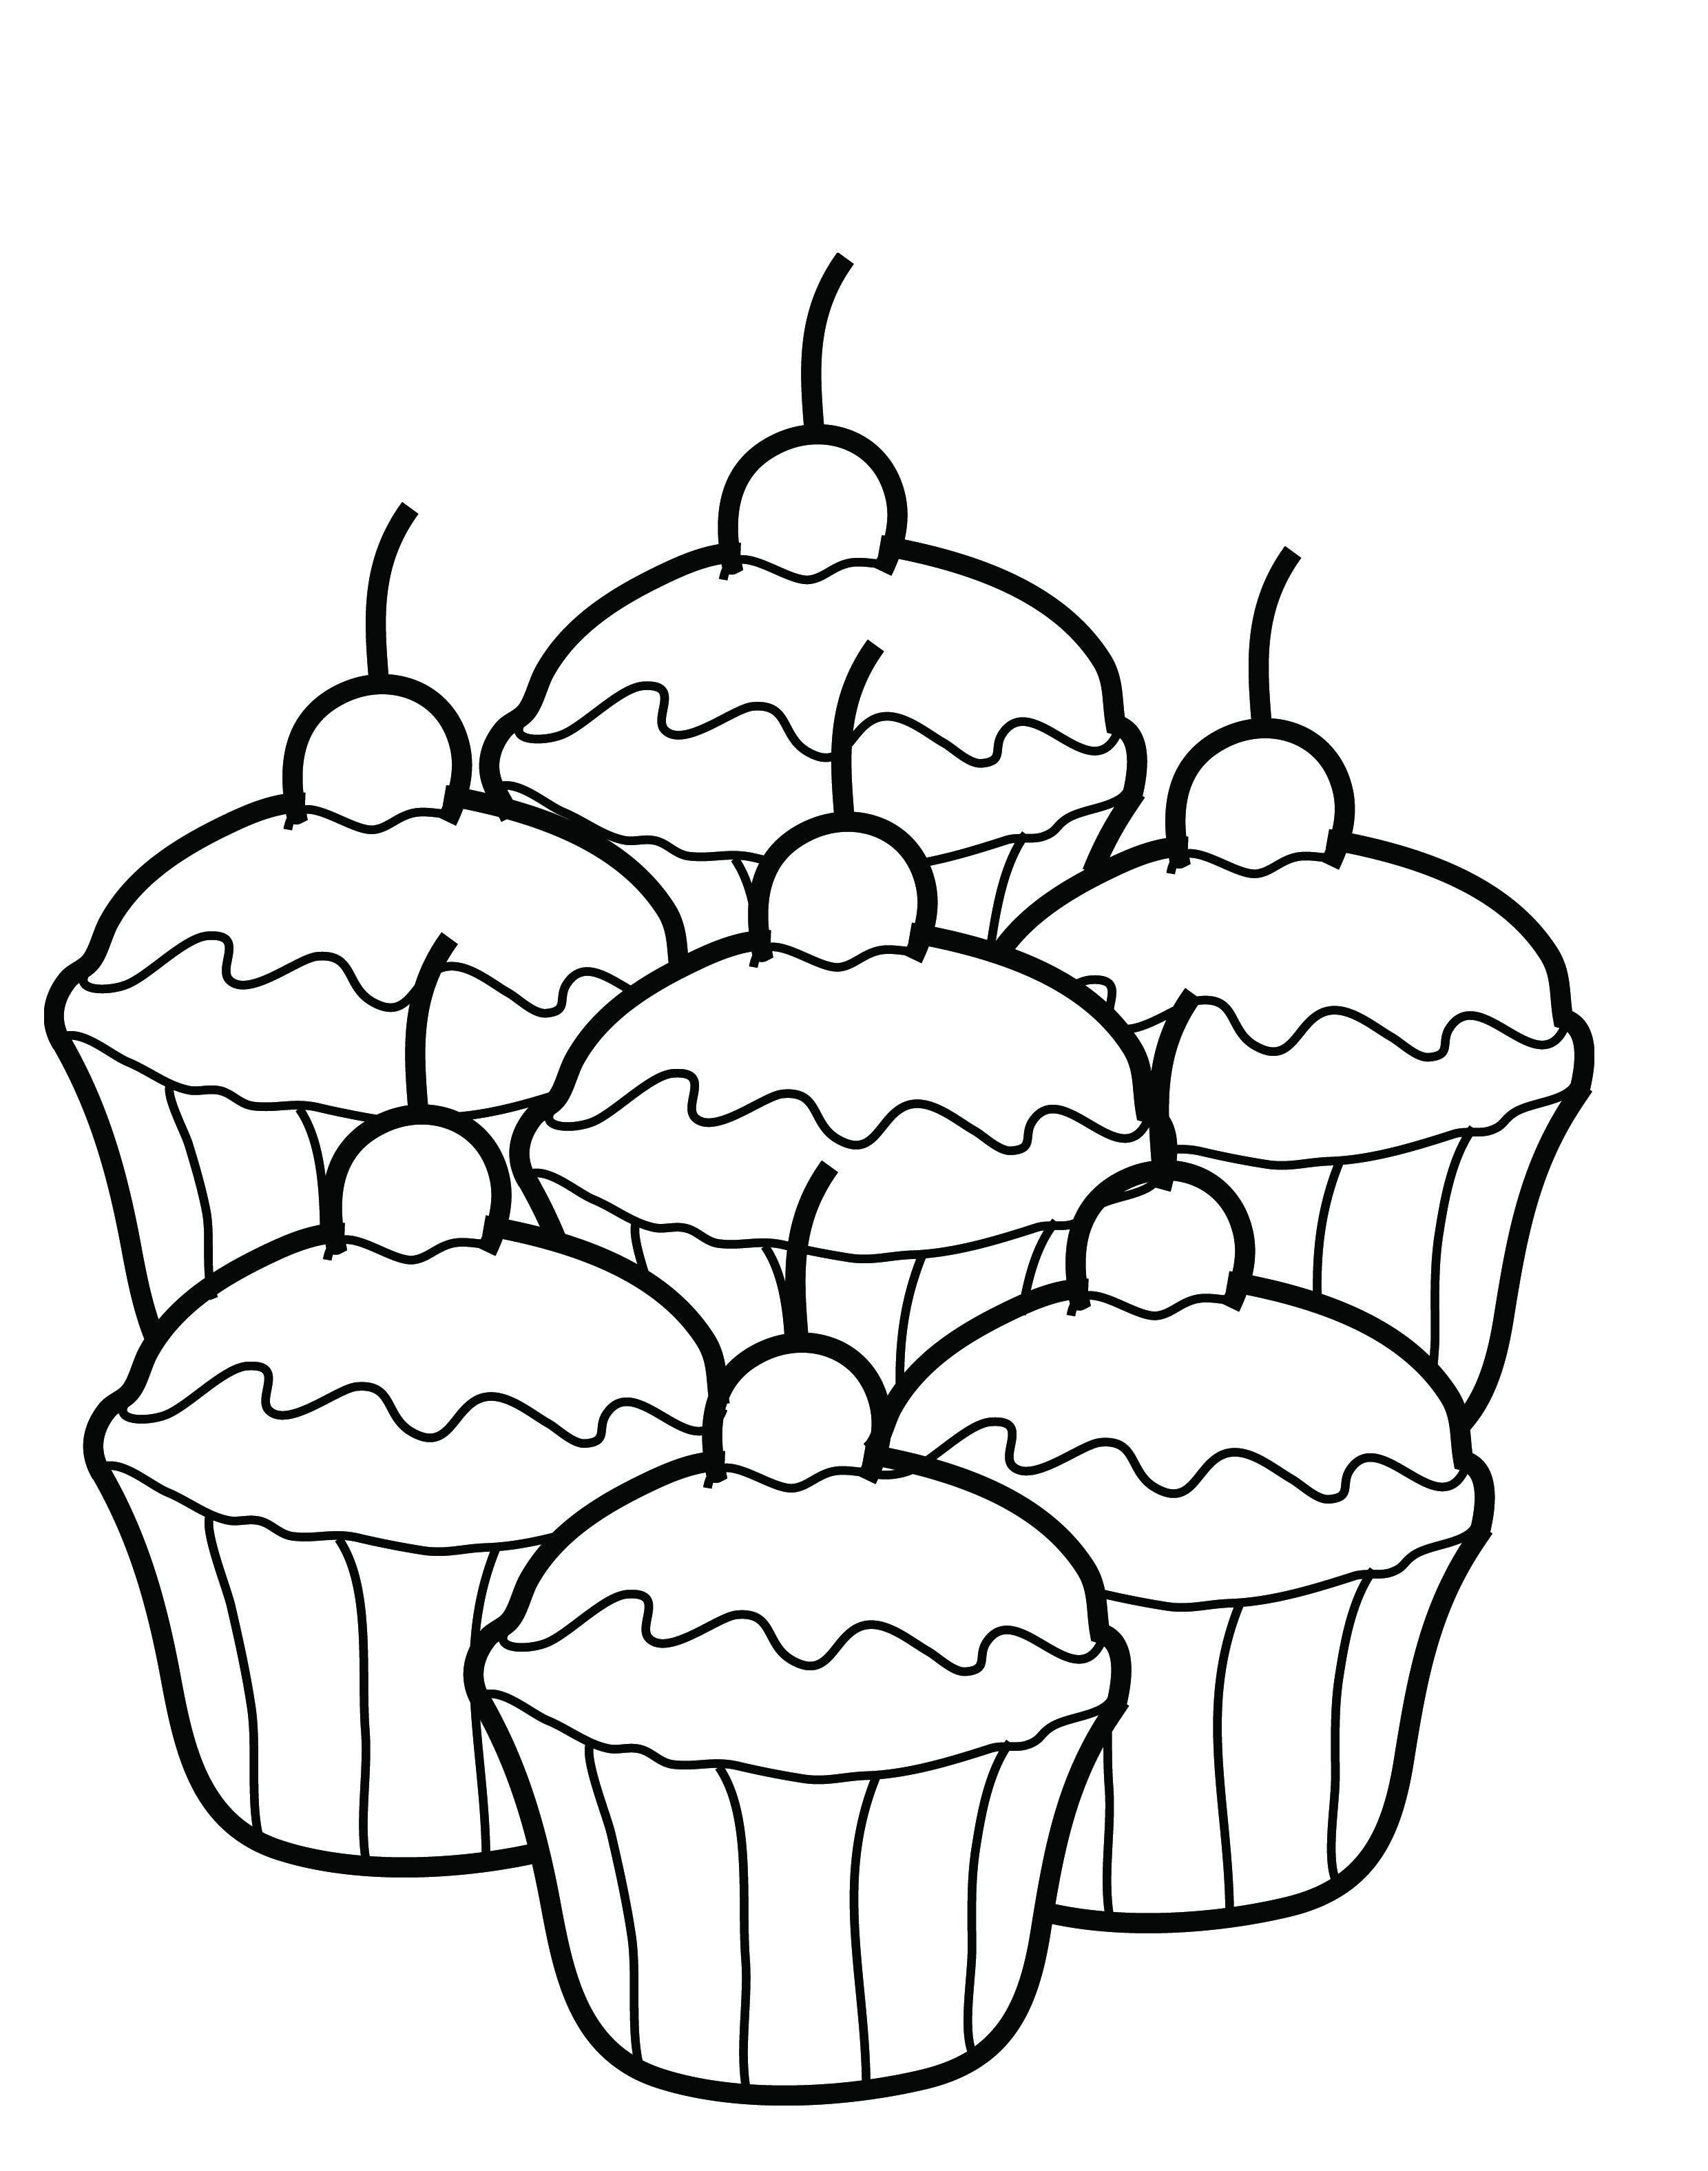 graphic relating to Printable Cupcake named Cost-free Printable Cupcake Coloring Internet pages For Youngsters Crafts For